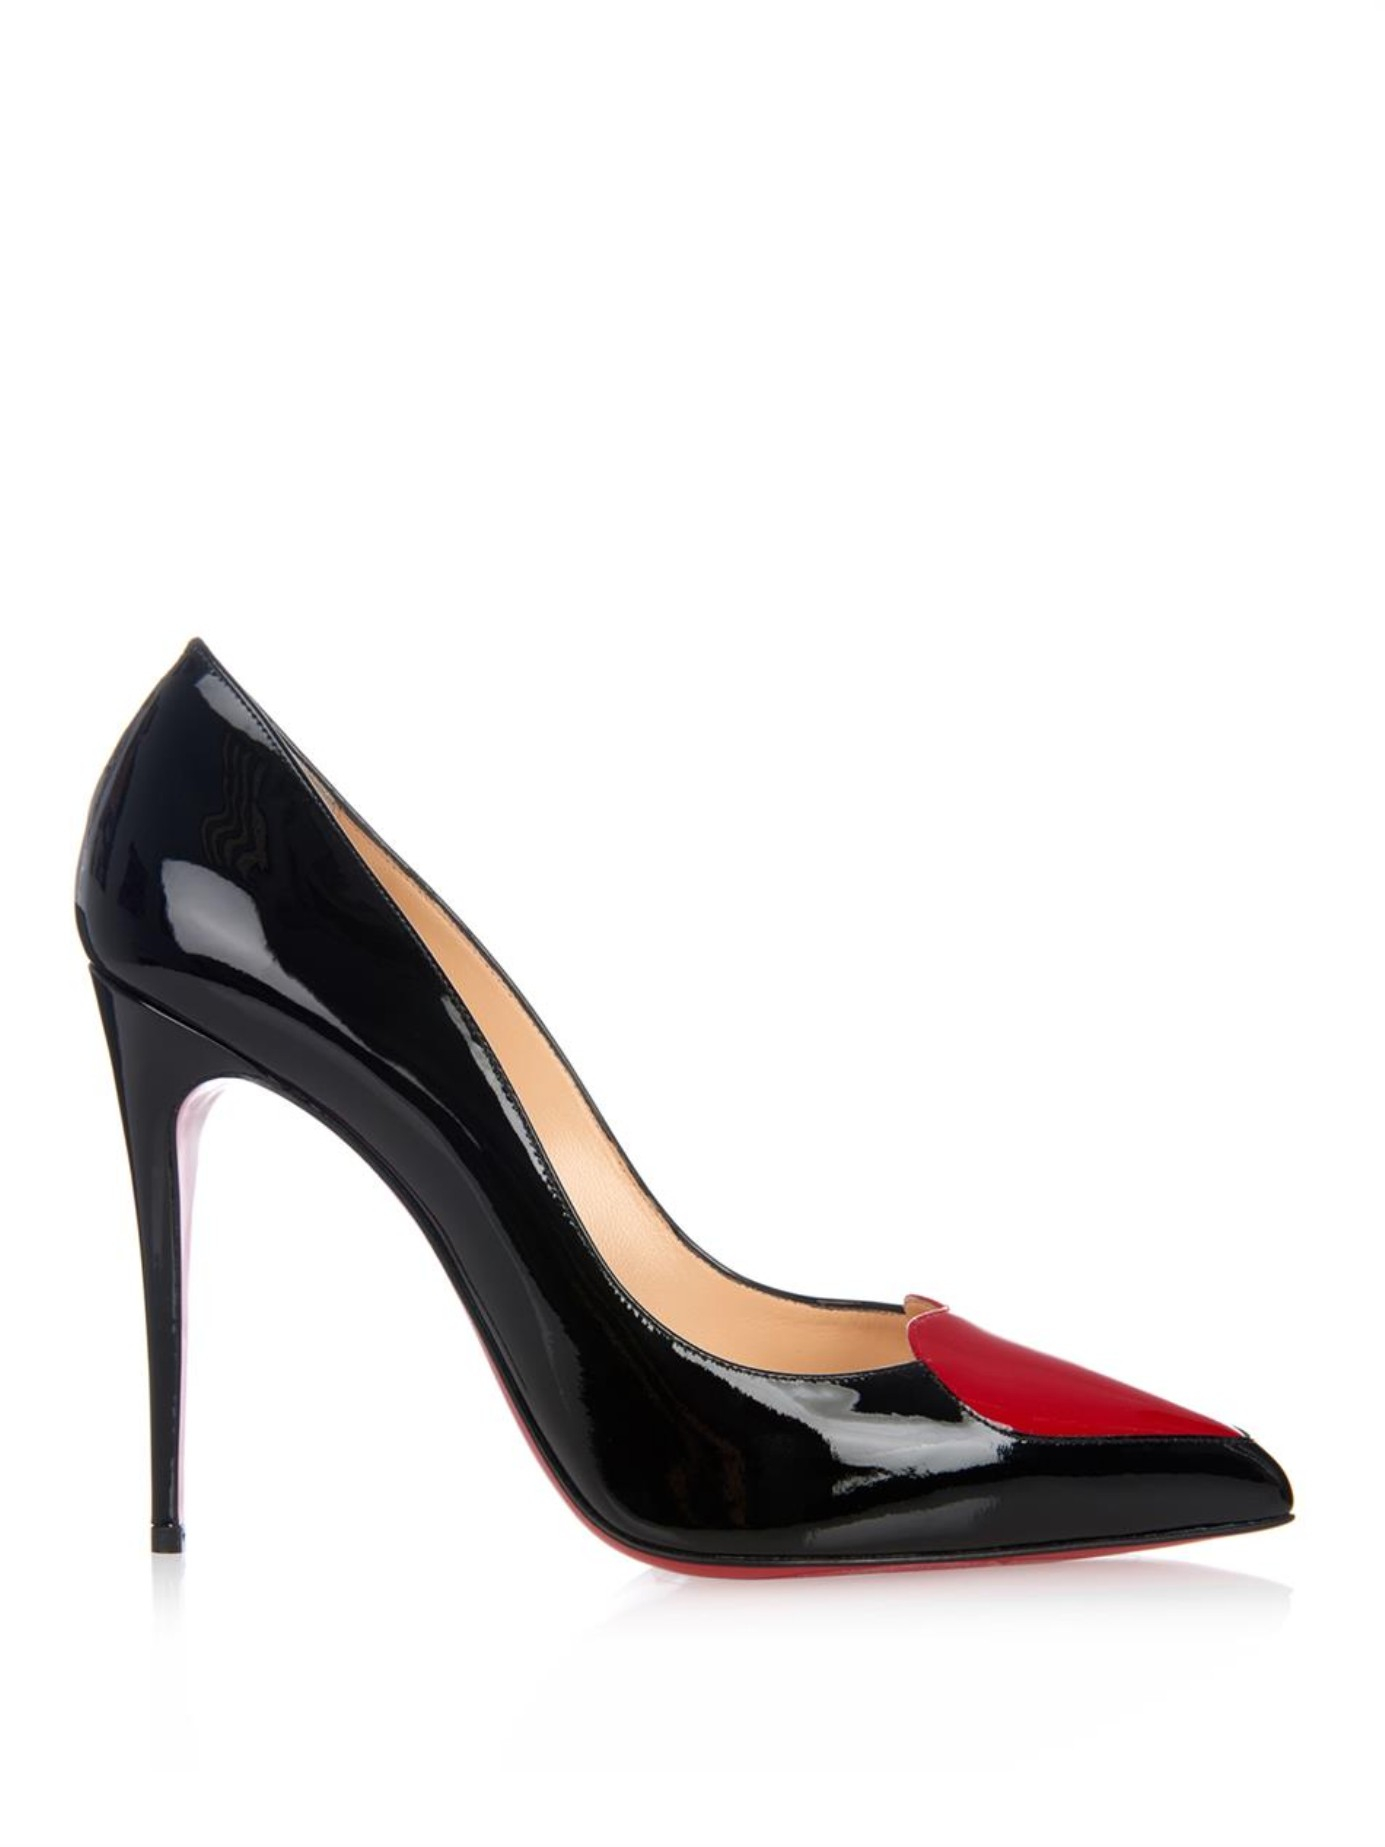 6c1712b25d Christian Louboutin Cora Heart Patent-Leather Heel Pumps in Red - Lyst